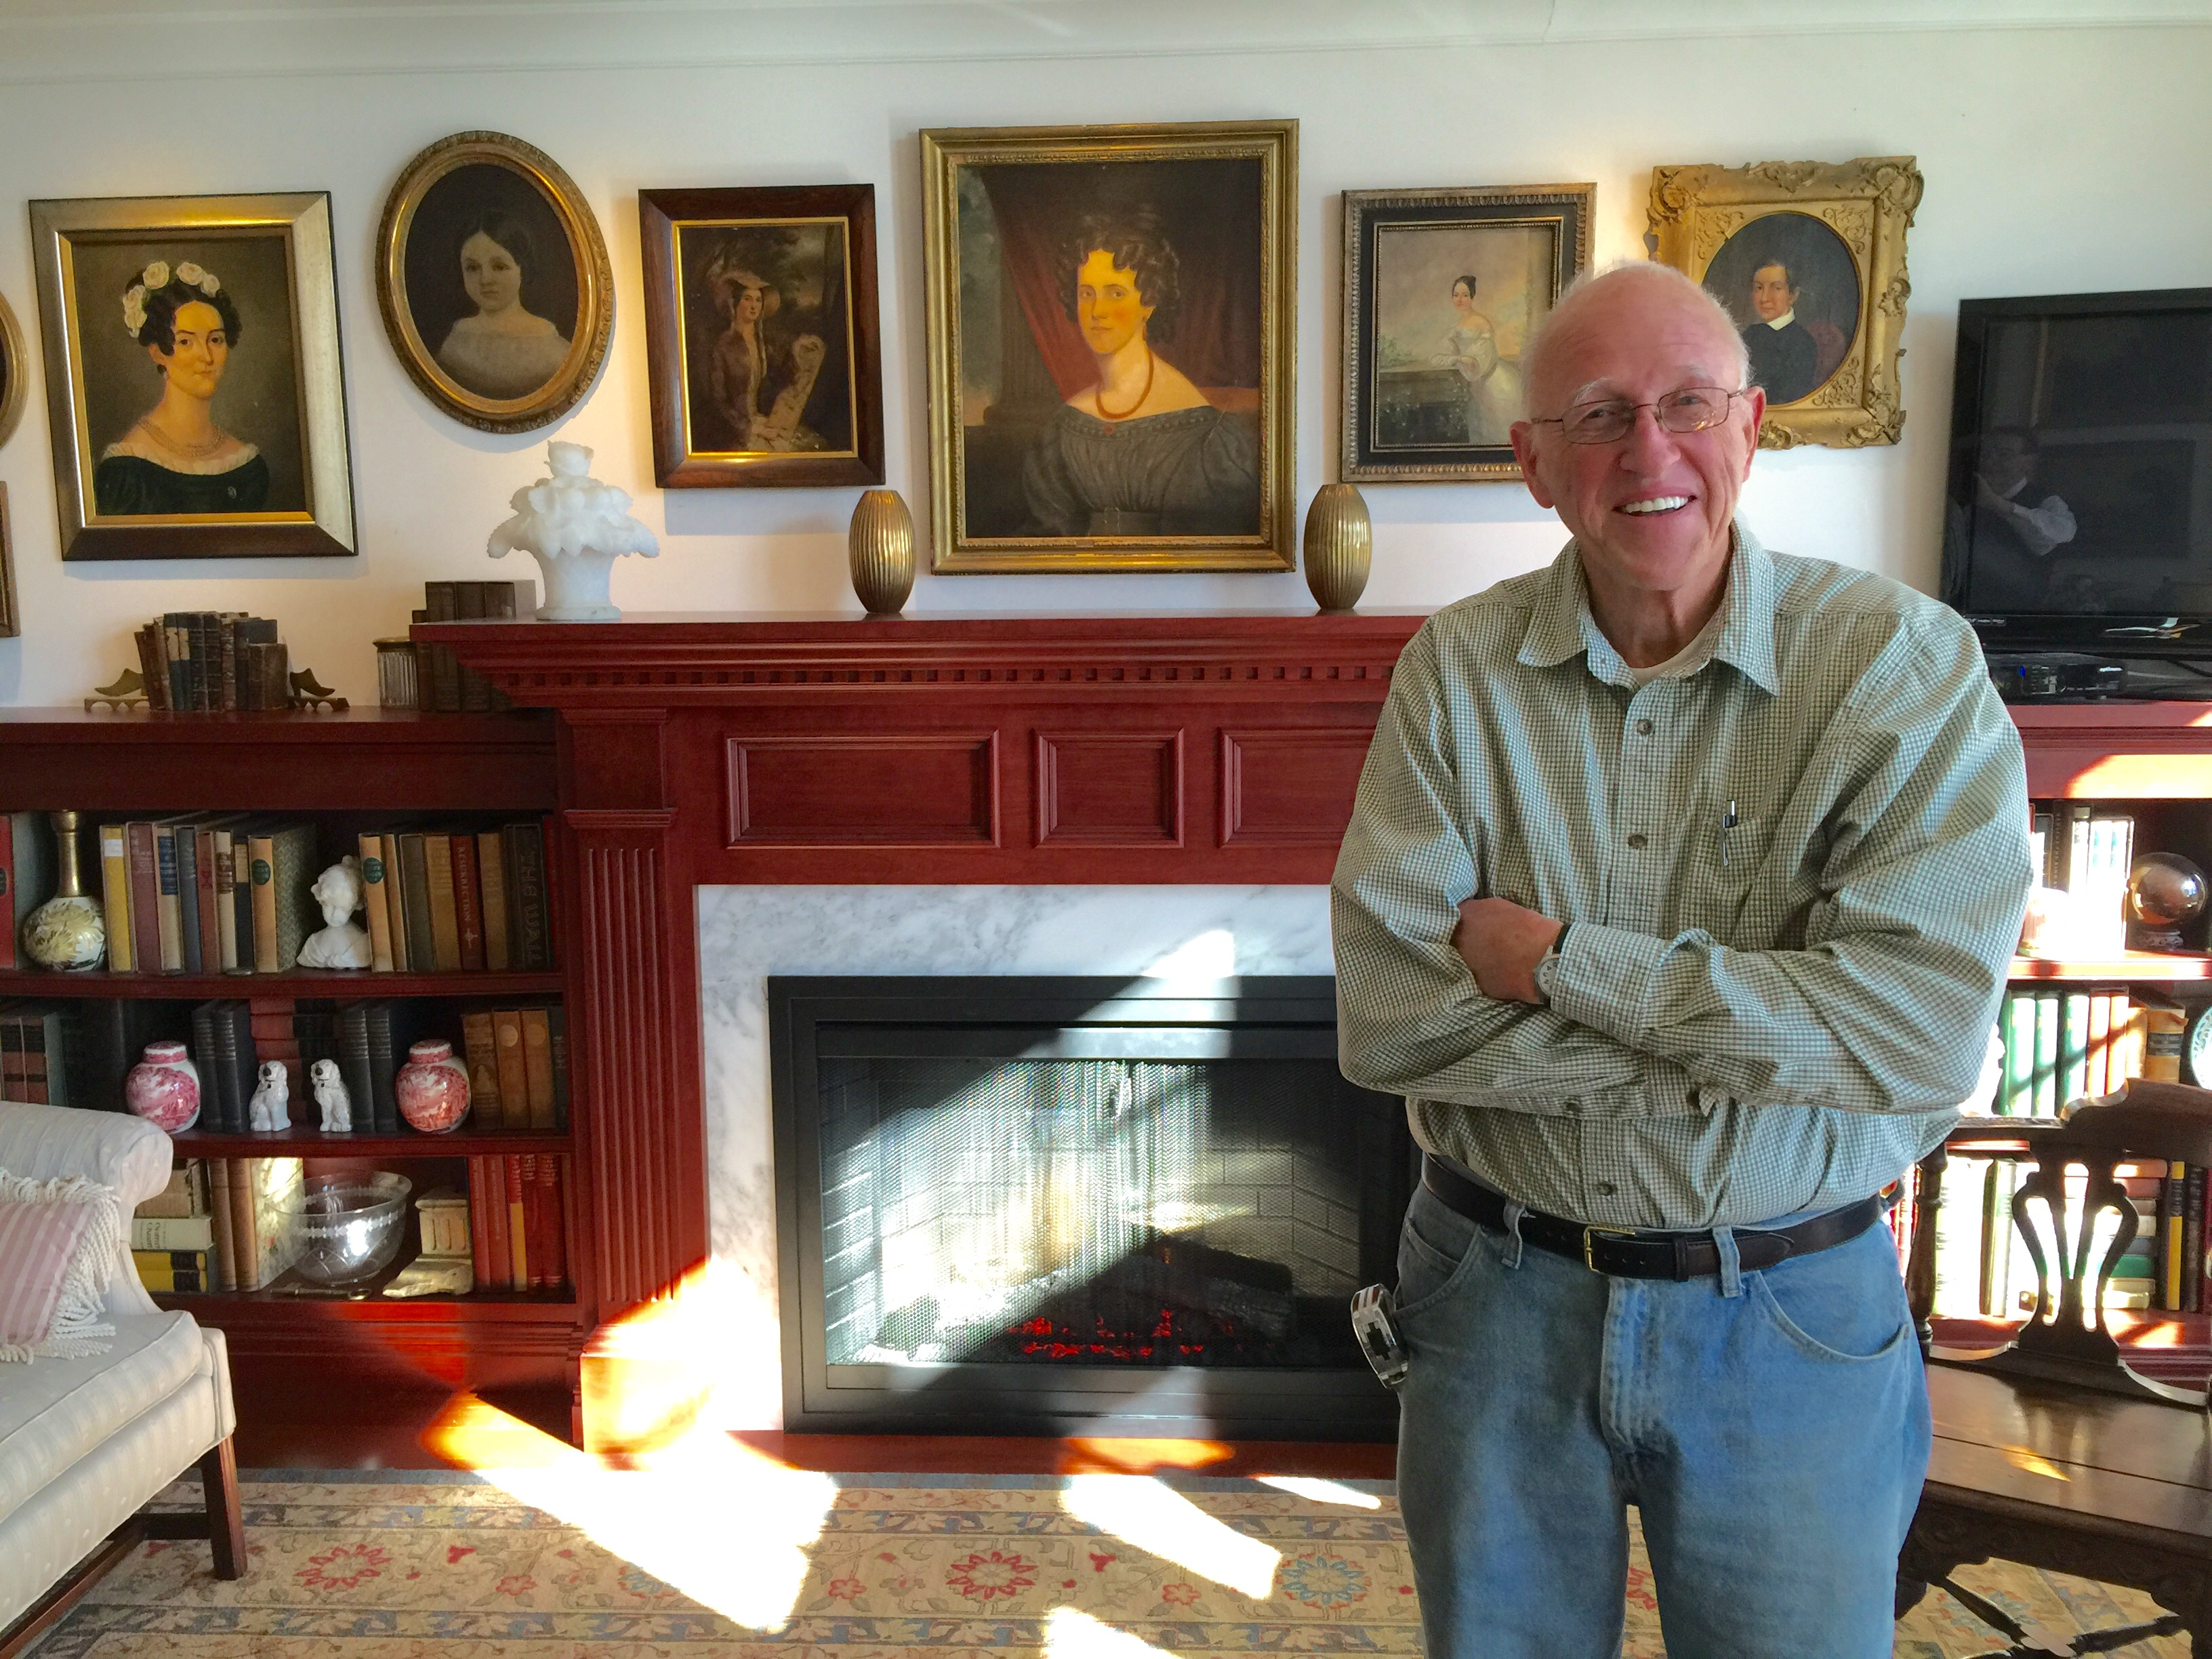 Jan Efraimsen Of Woodtronics Millwork Corp. Stands In Front Of The Mantel  And Bookcases His